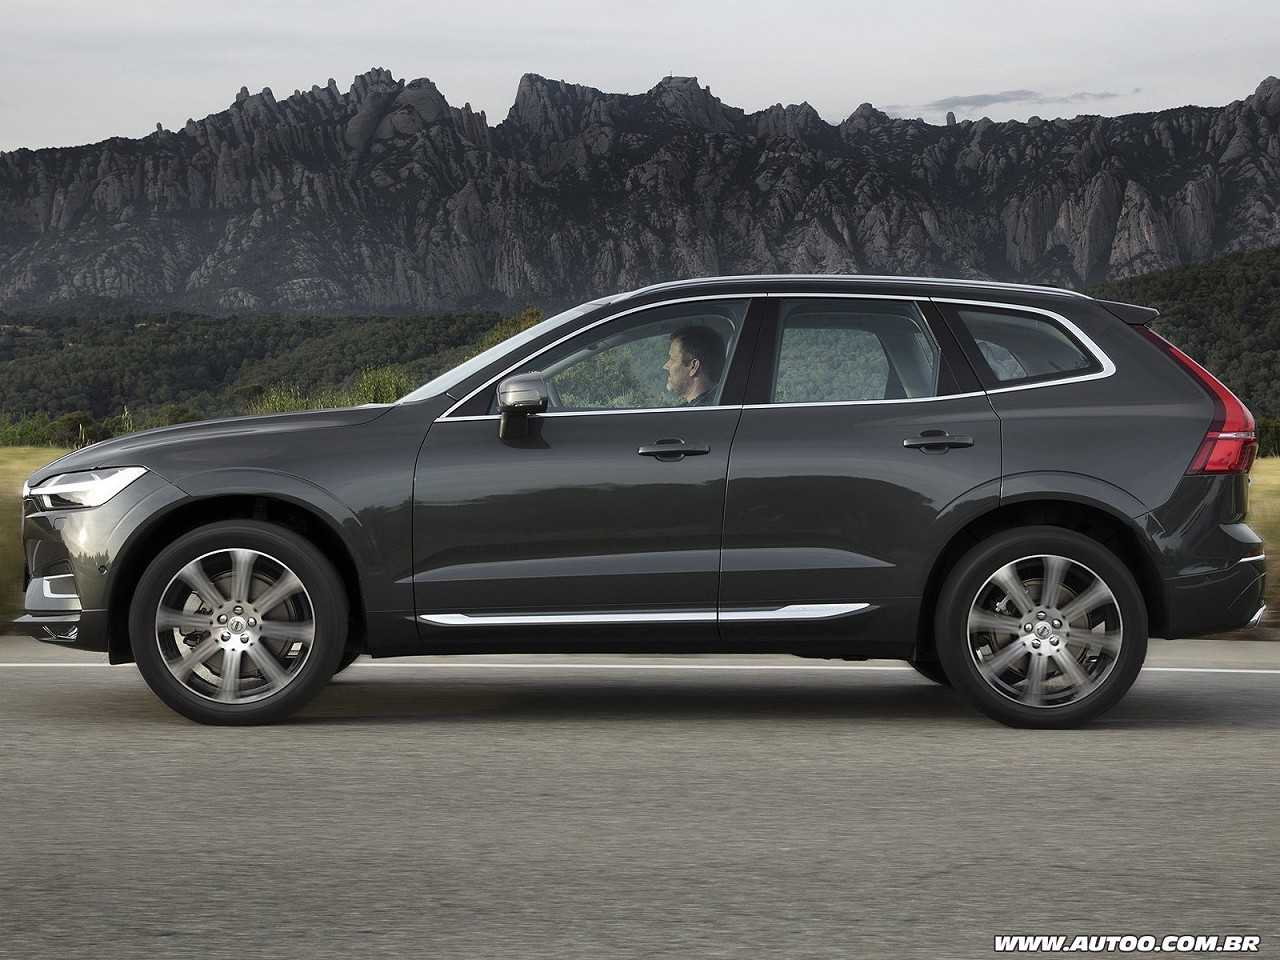 VolvoXC60 2019 - lateral